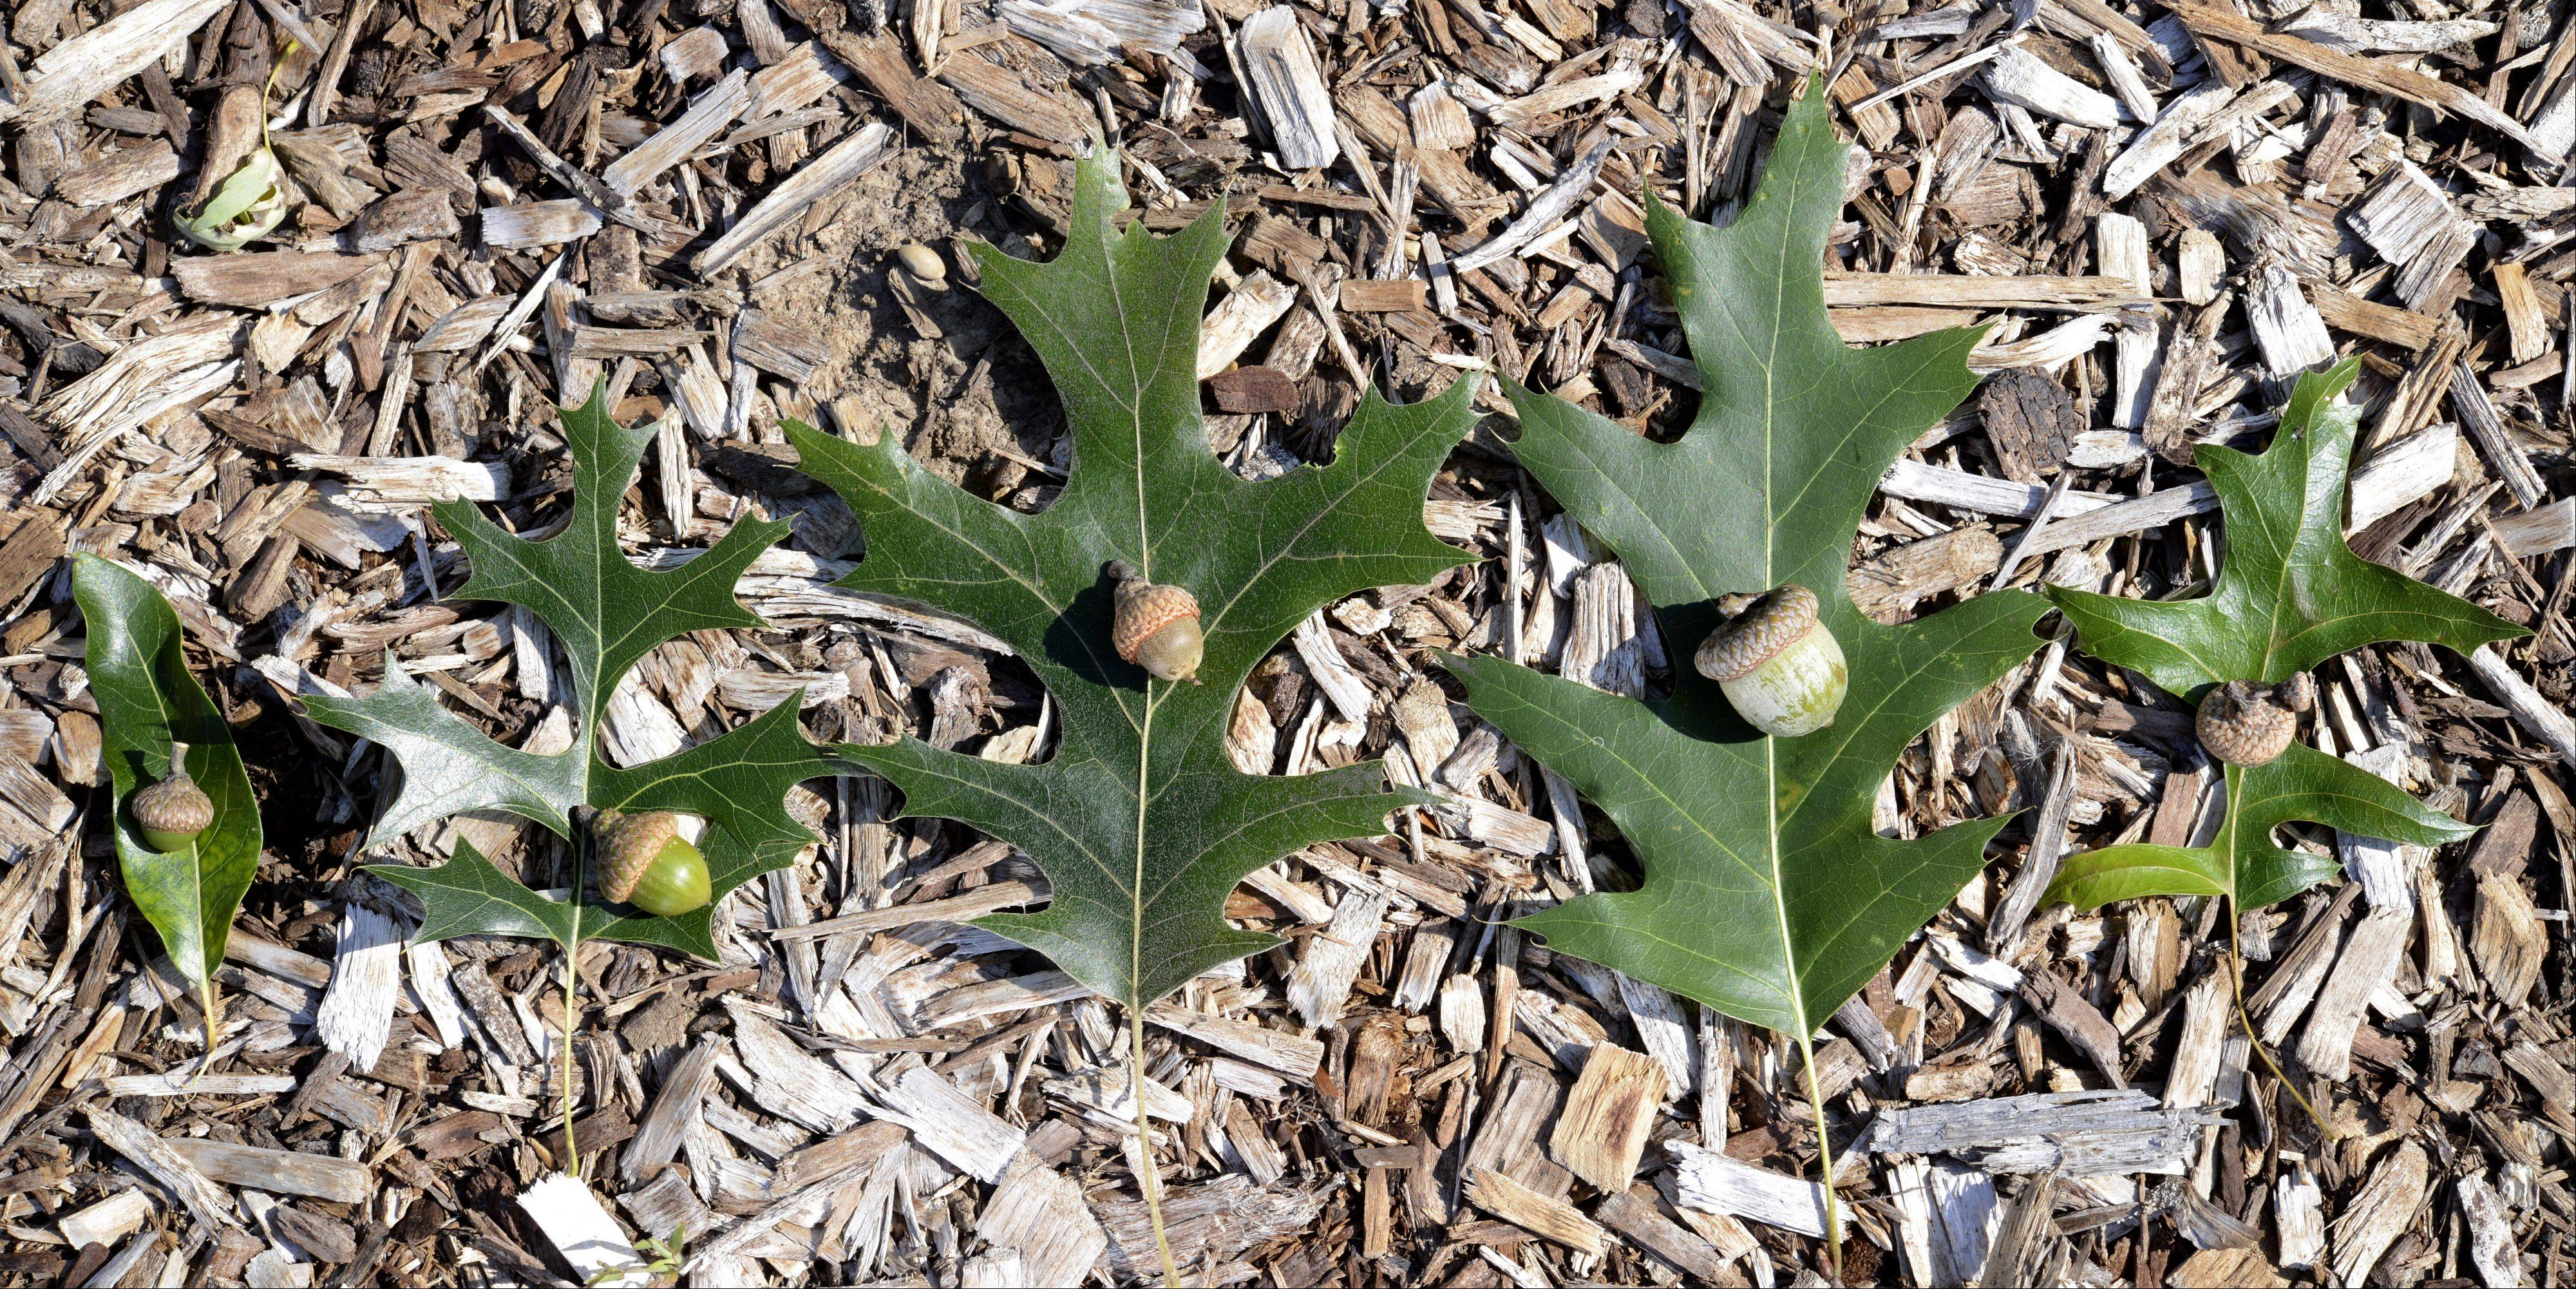 A side-by-side comparison of oaks in the red oak family. From left: shingle, hills, black, northern red and pin oak leaves and their respective acorns. Red oak members take two years for their acorns to develop and drop, unlike members of the white oak family.